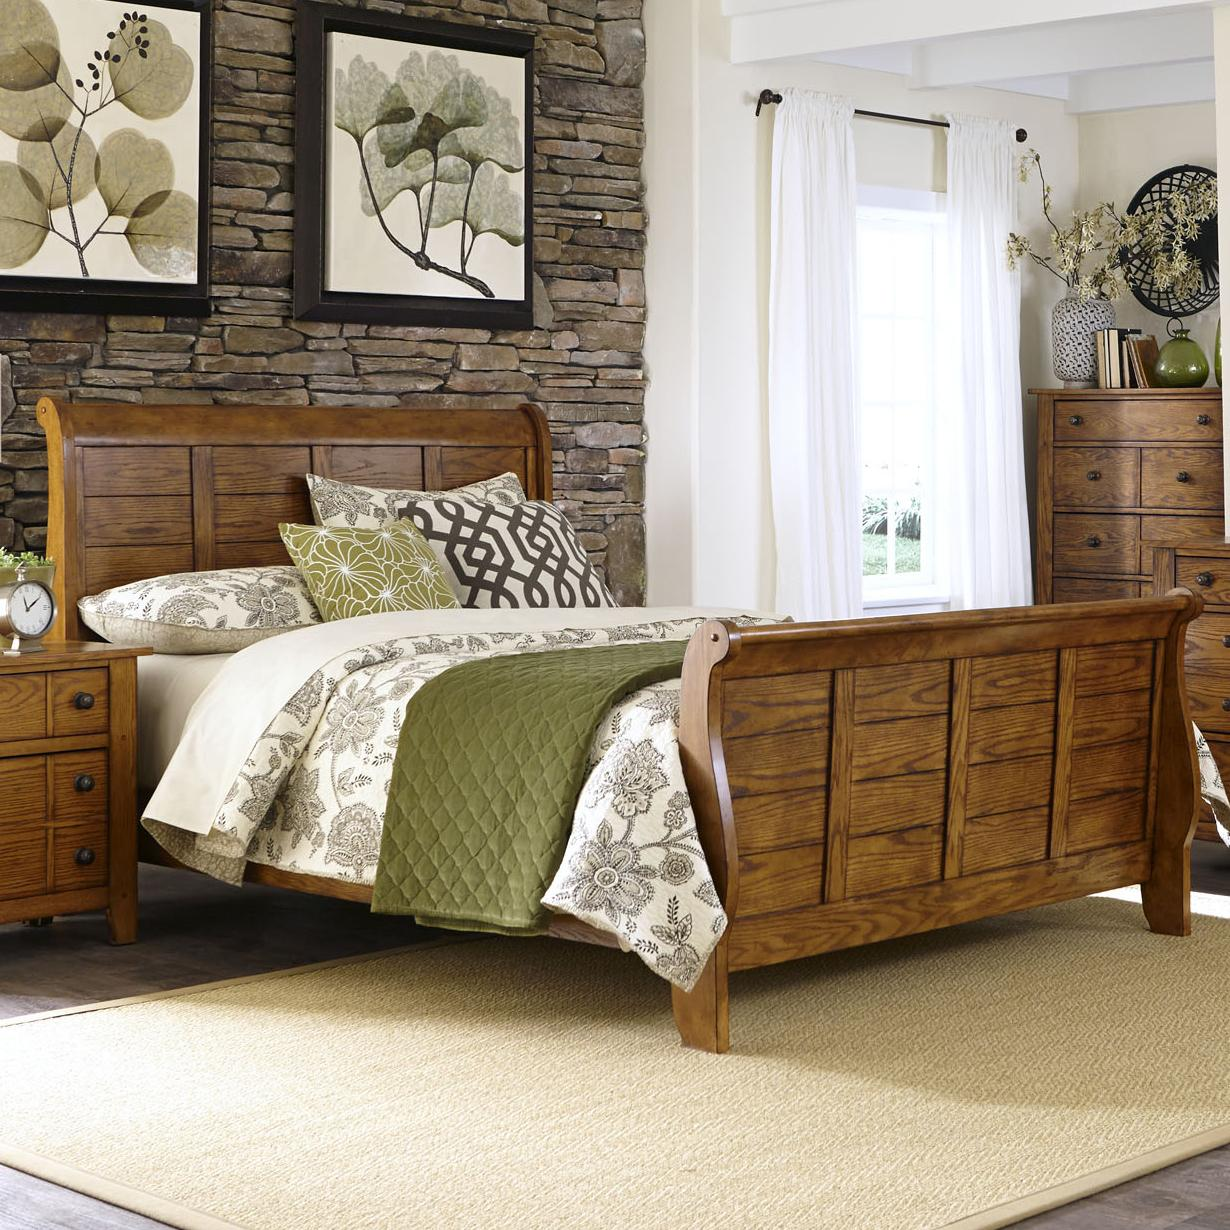 Grandpa's Cabin Queen Sleigh Bed by Libby at Walker's Furniture